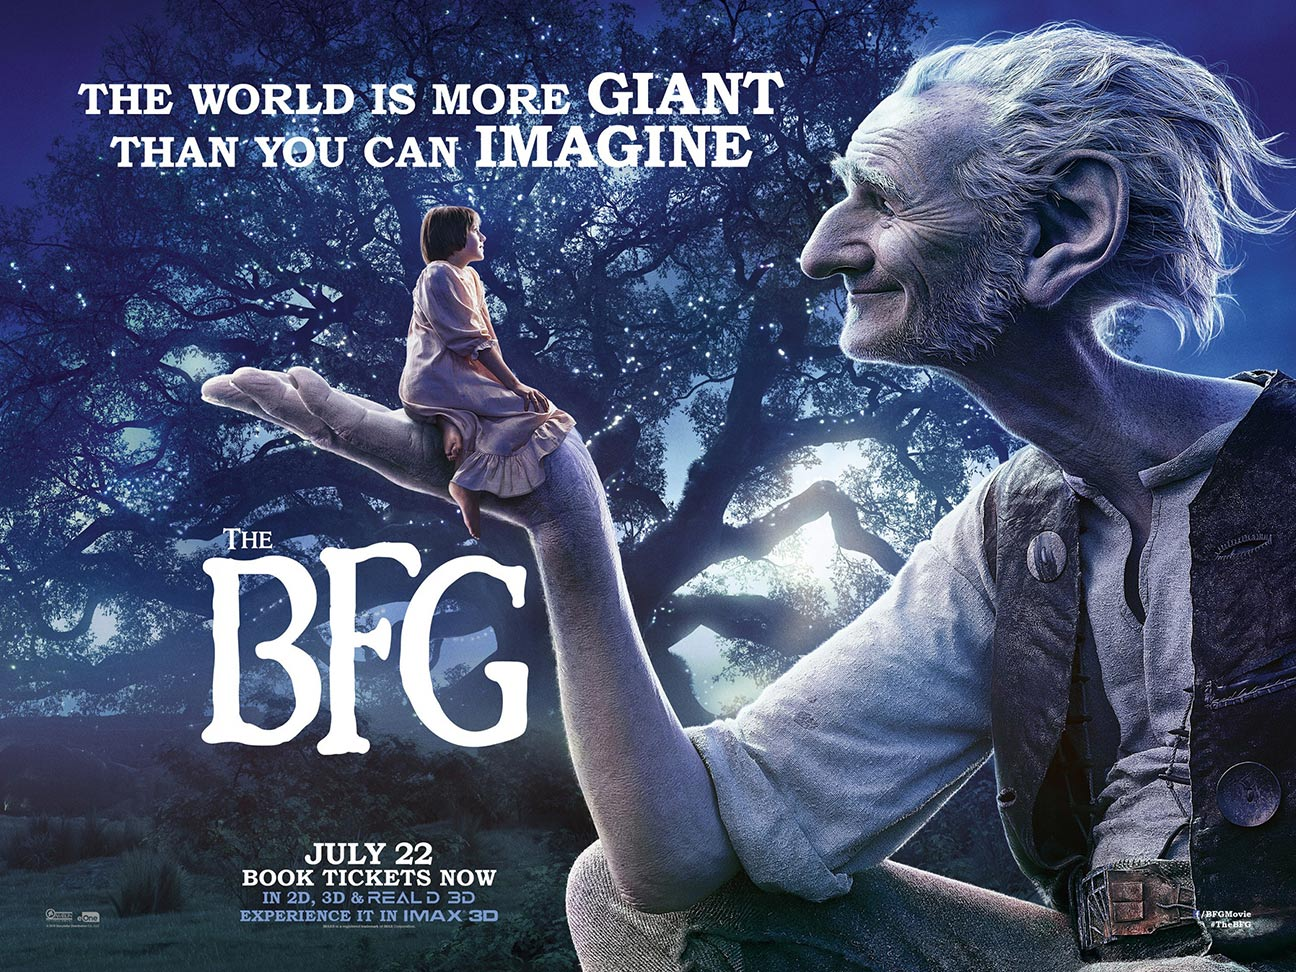 BFG (2016) Movie Poster Google image from https://cdn.traileraddict.com/content/walt-disney-pictures/the-bfg-4.jpg